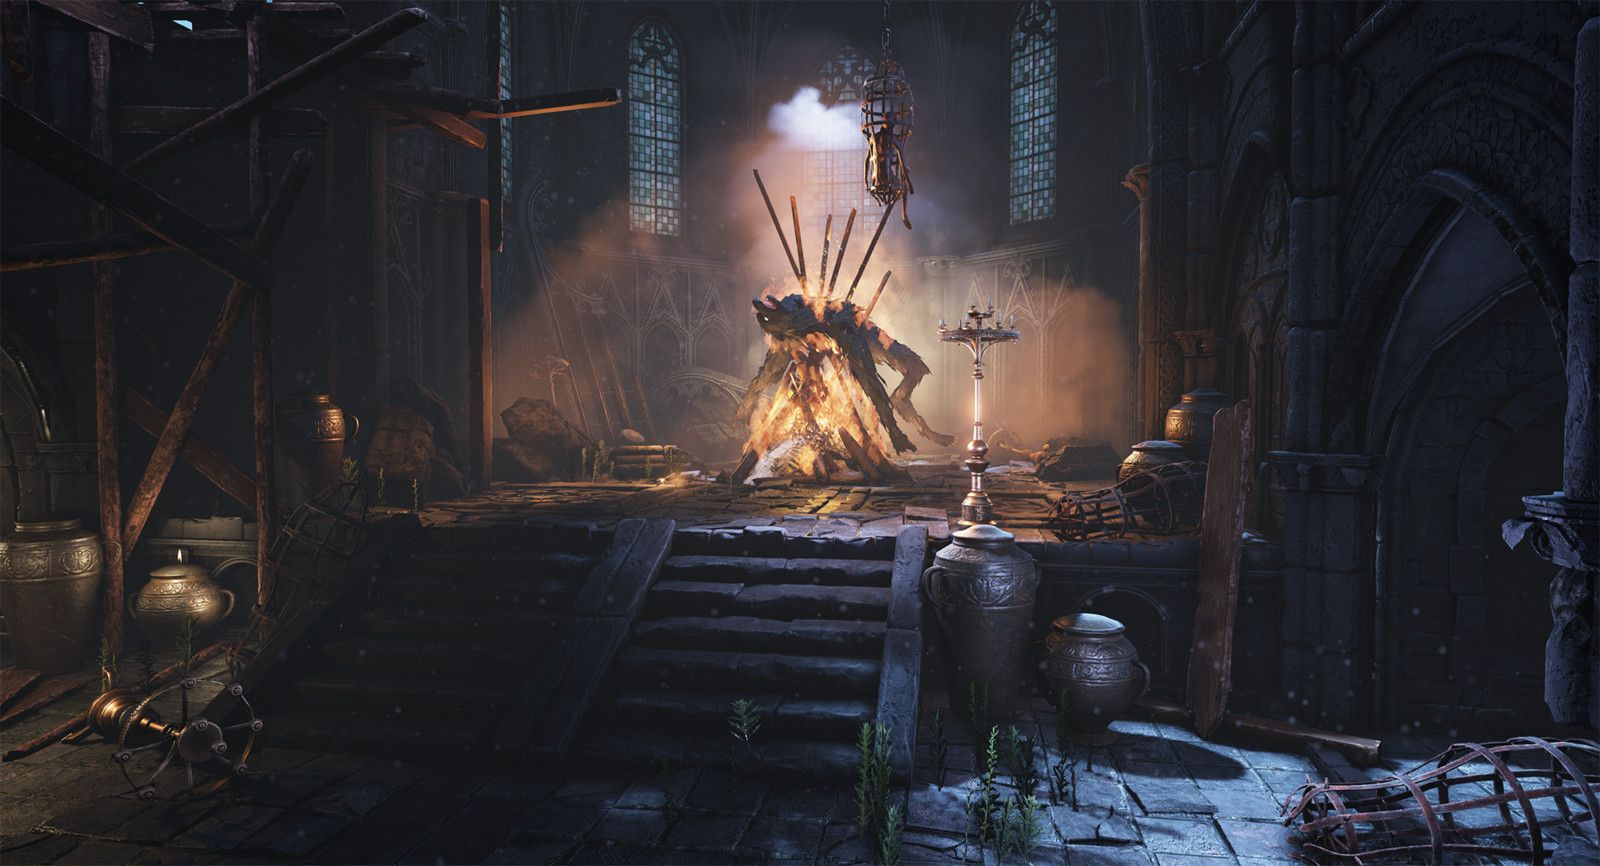 Bloodborne inspired environment, Andreas Stavaas on